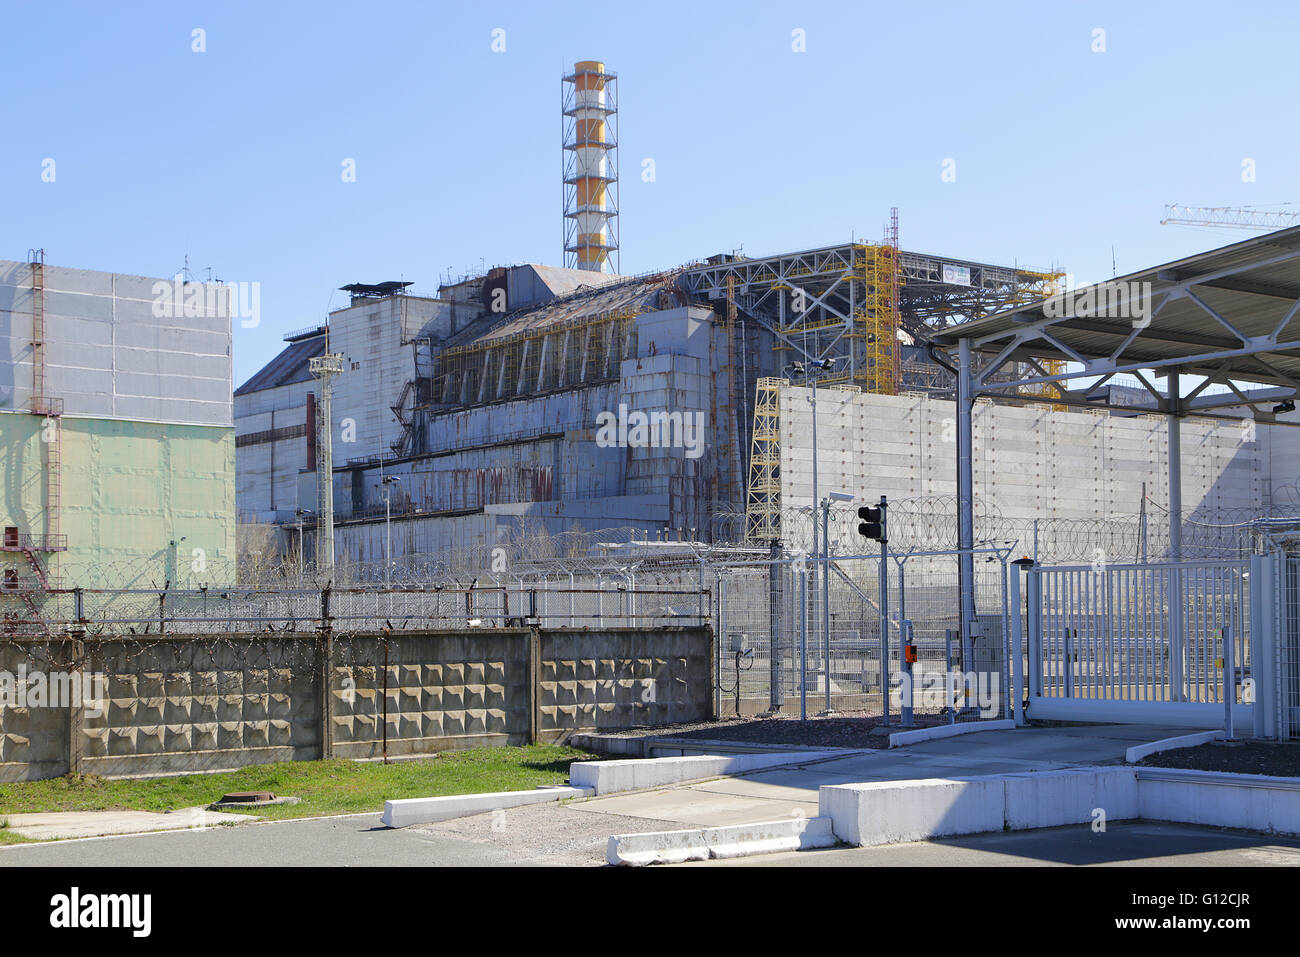 Chernobyl - Nuclear Power Plant - Wrecked Reactor 4... - Stock Image